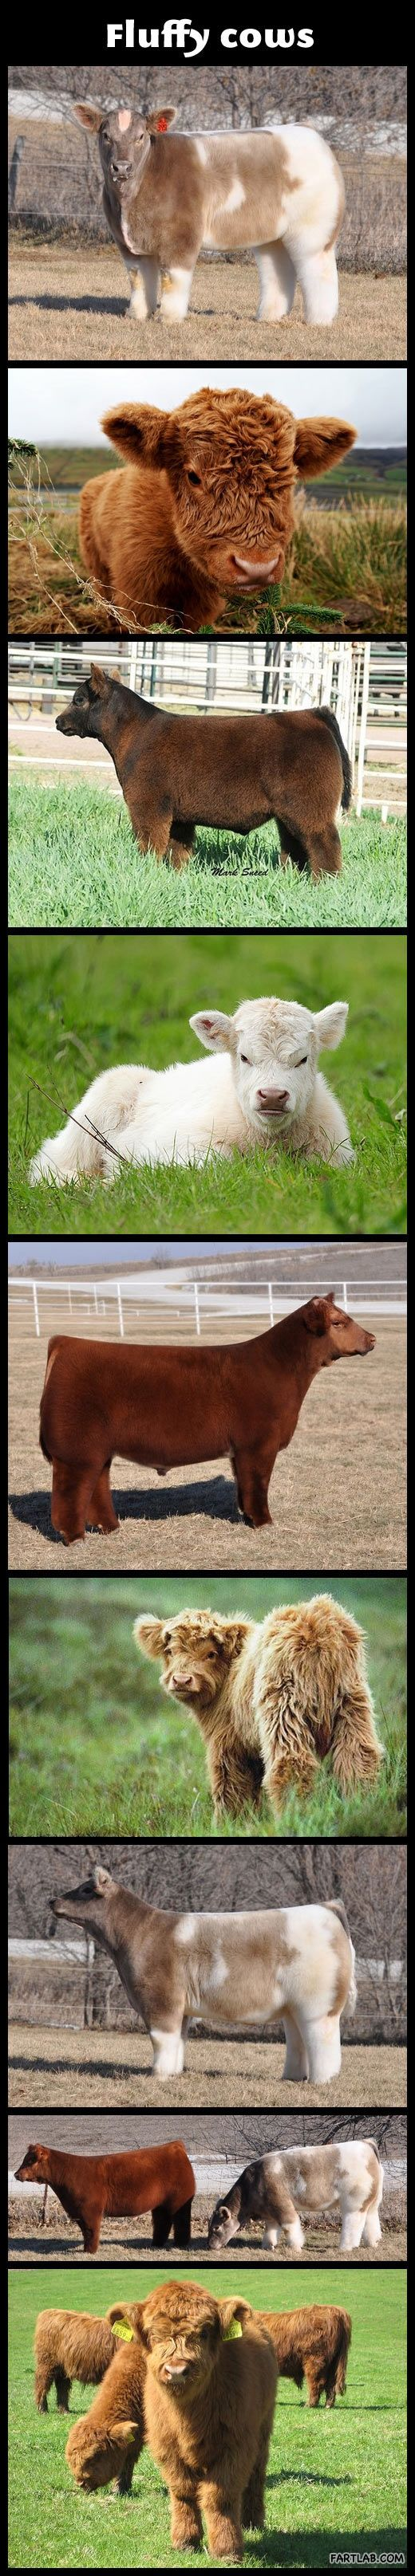 Fluffy Cows... I know this isn't chicken related but I do believe my chicks would enjoy a fluffy cow wandering around the field